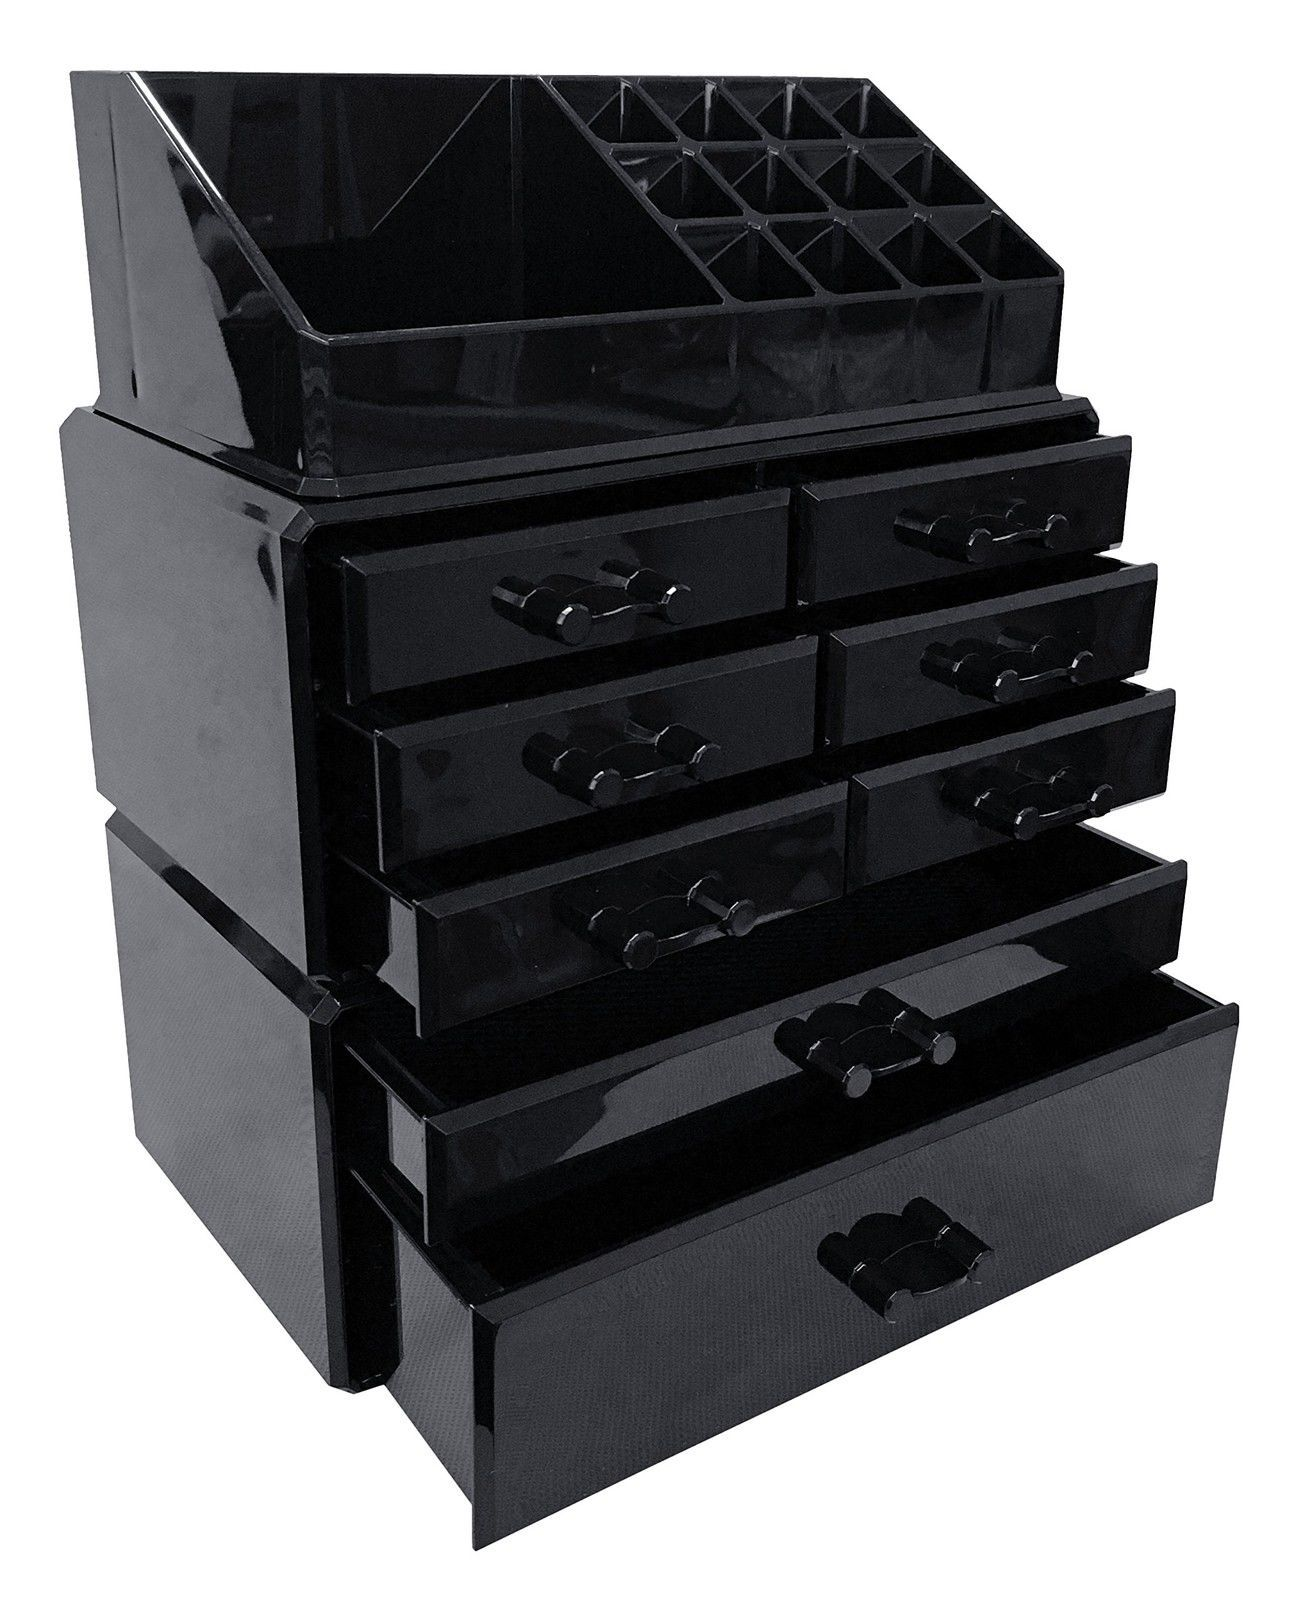 Black Acrylic Makeup Organizer Drawers Box Ma\u2026